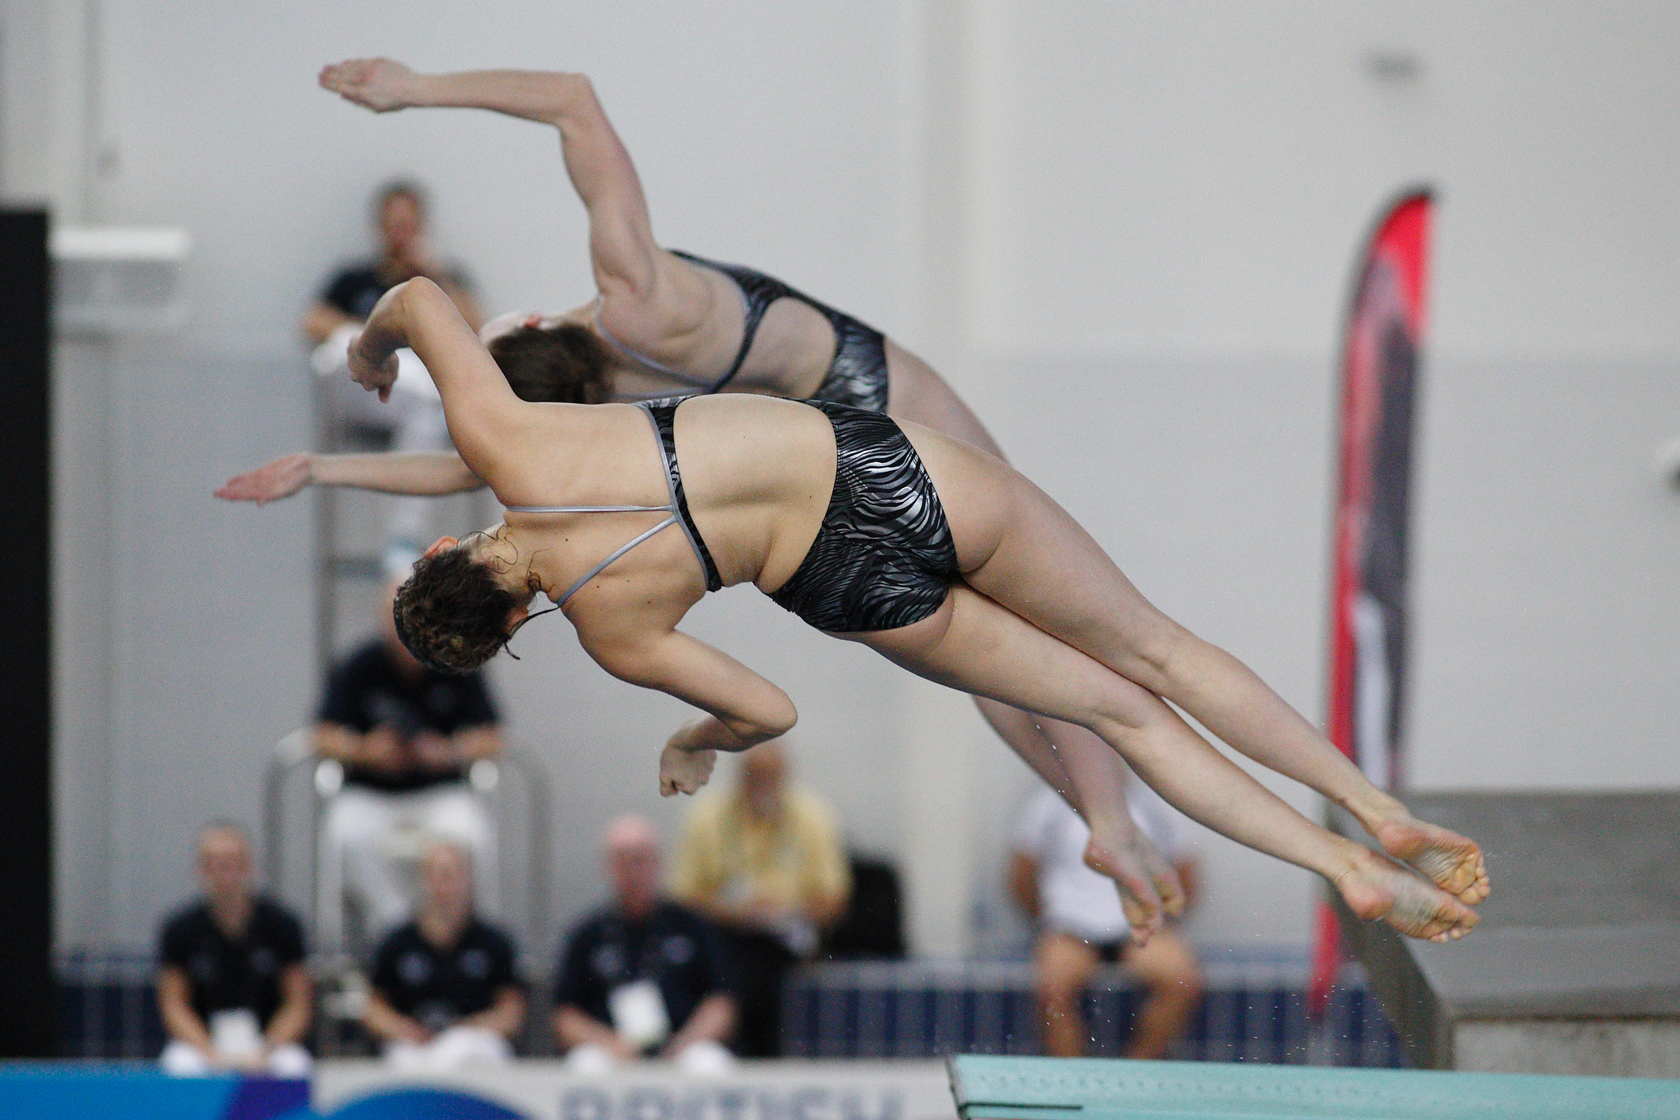 Millie Fowler and Millie Haffety diving